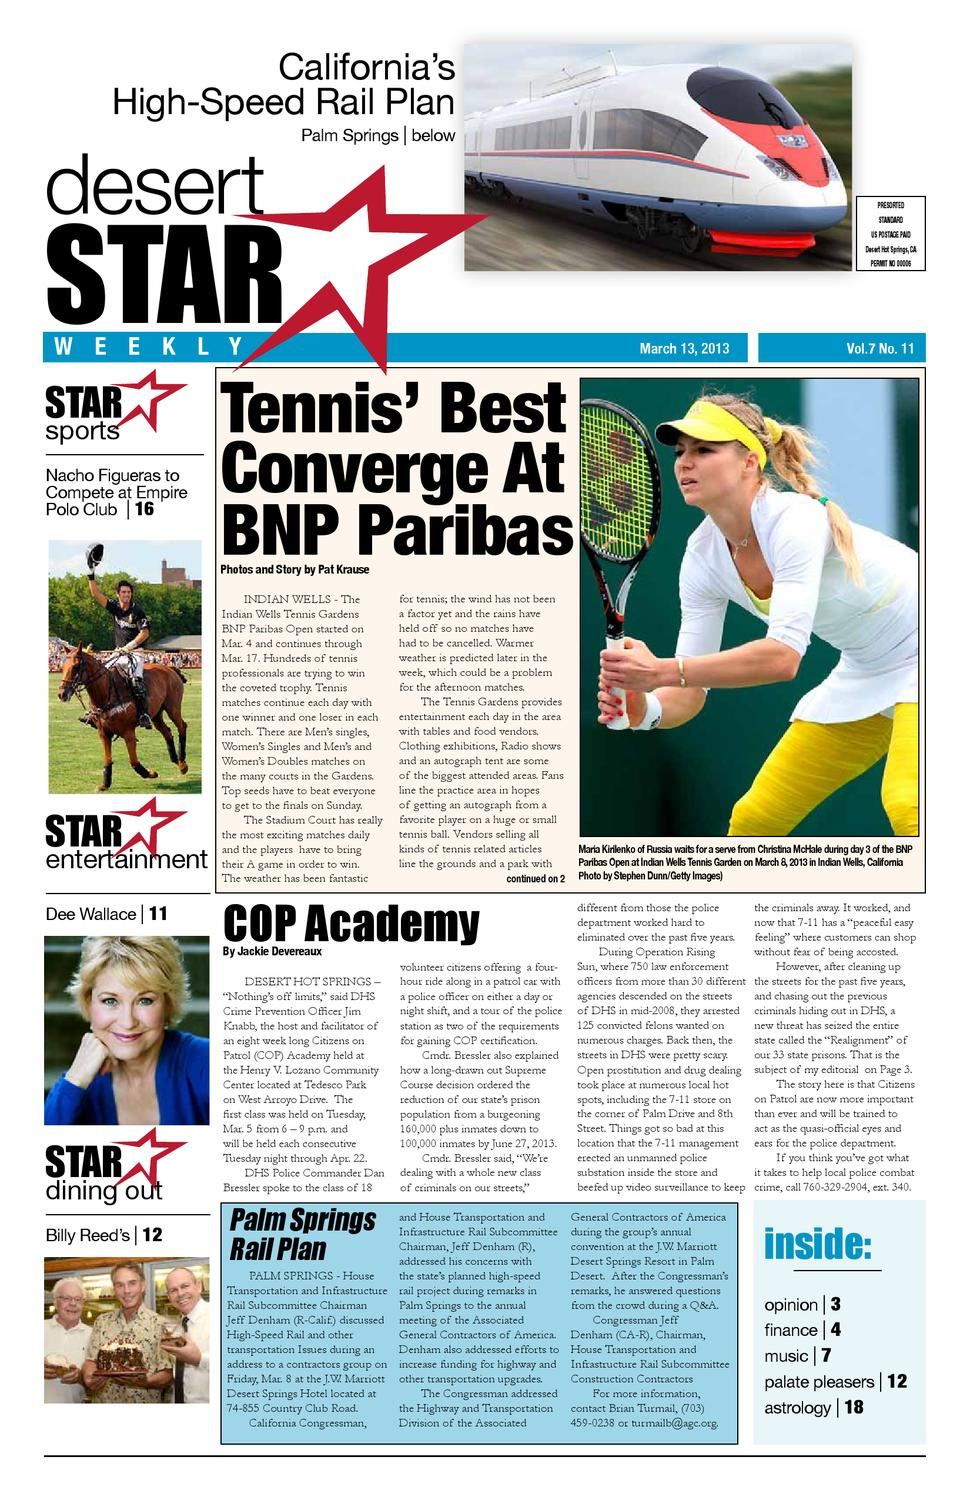 Desert Star Weekly Mar. 13, 2013 Issue by The Desert Star Weekly ...